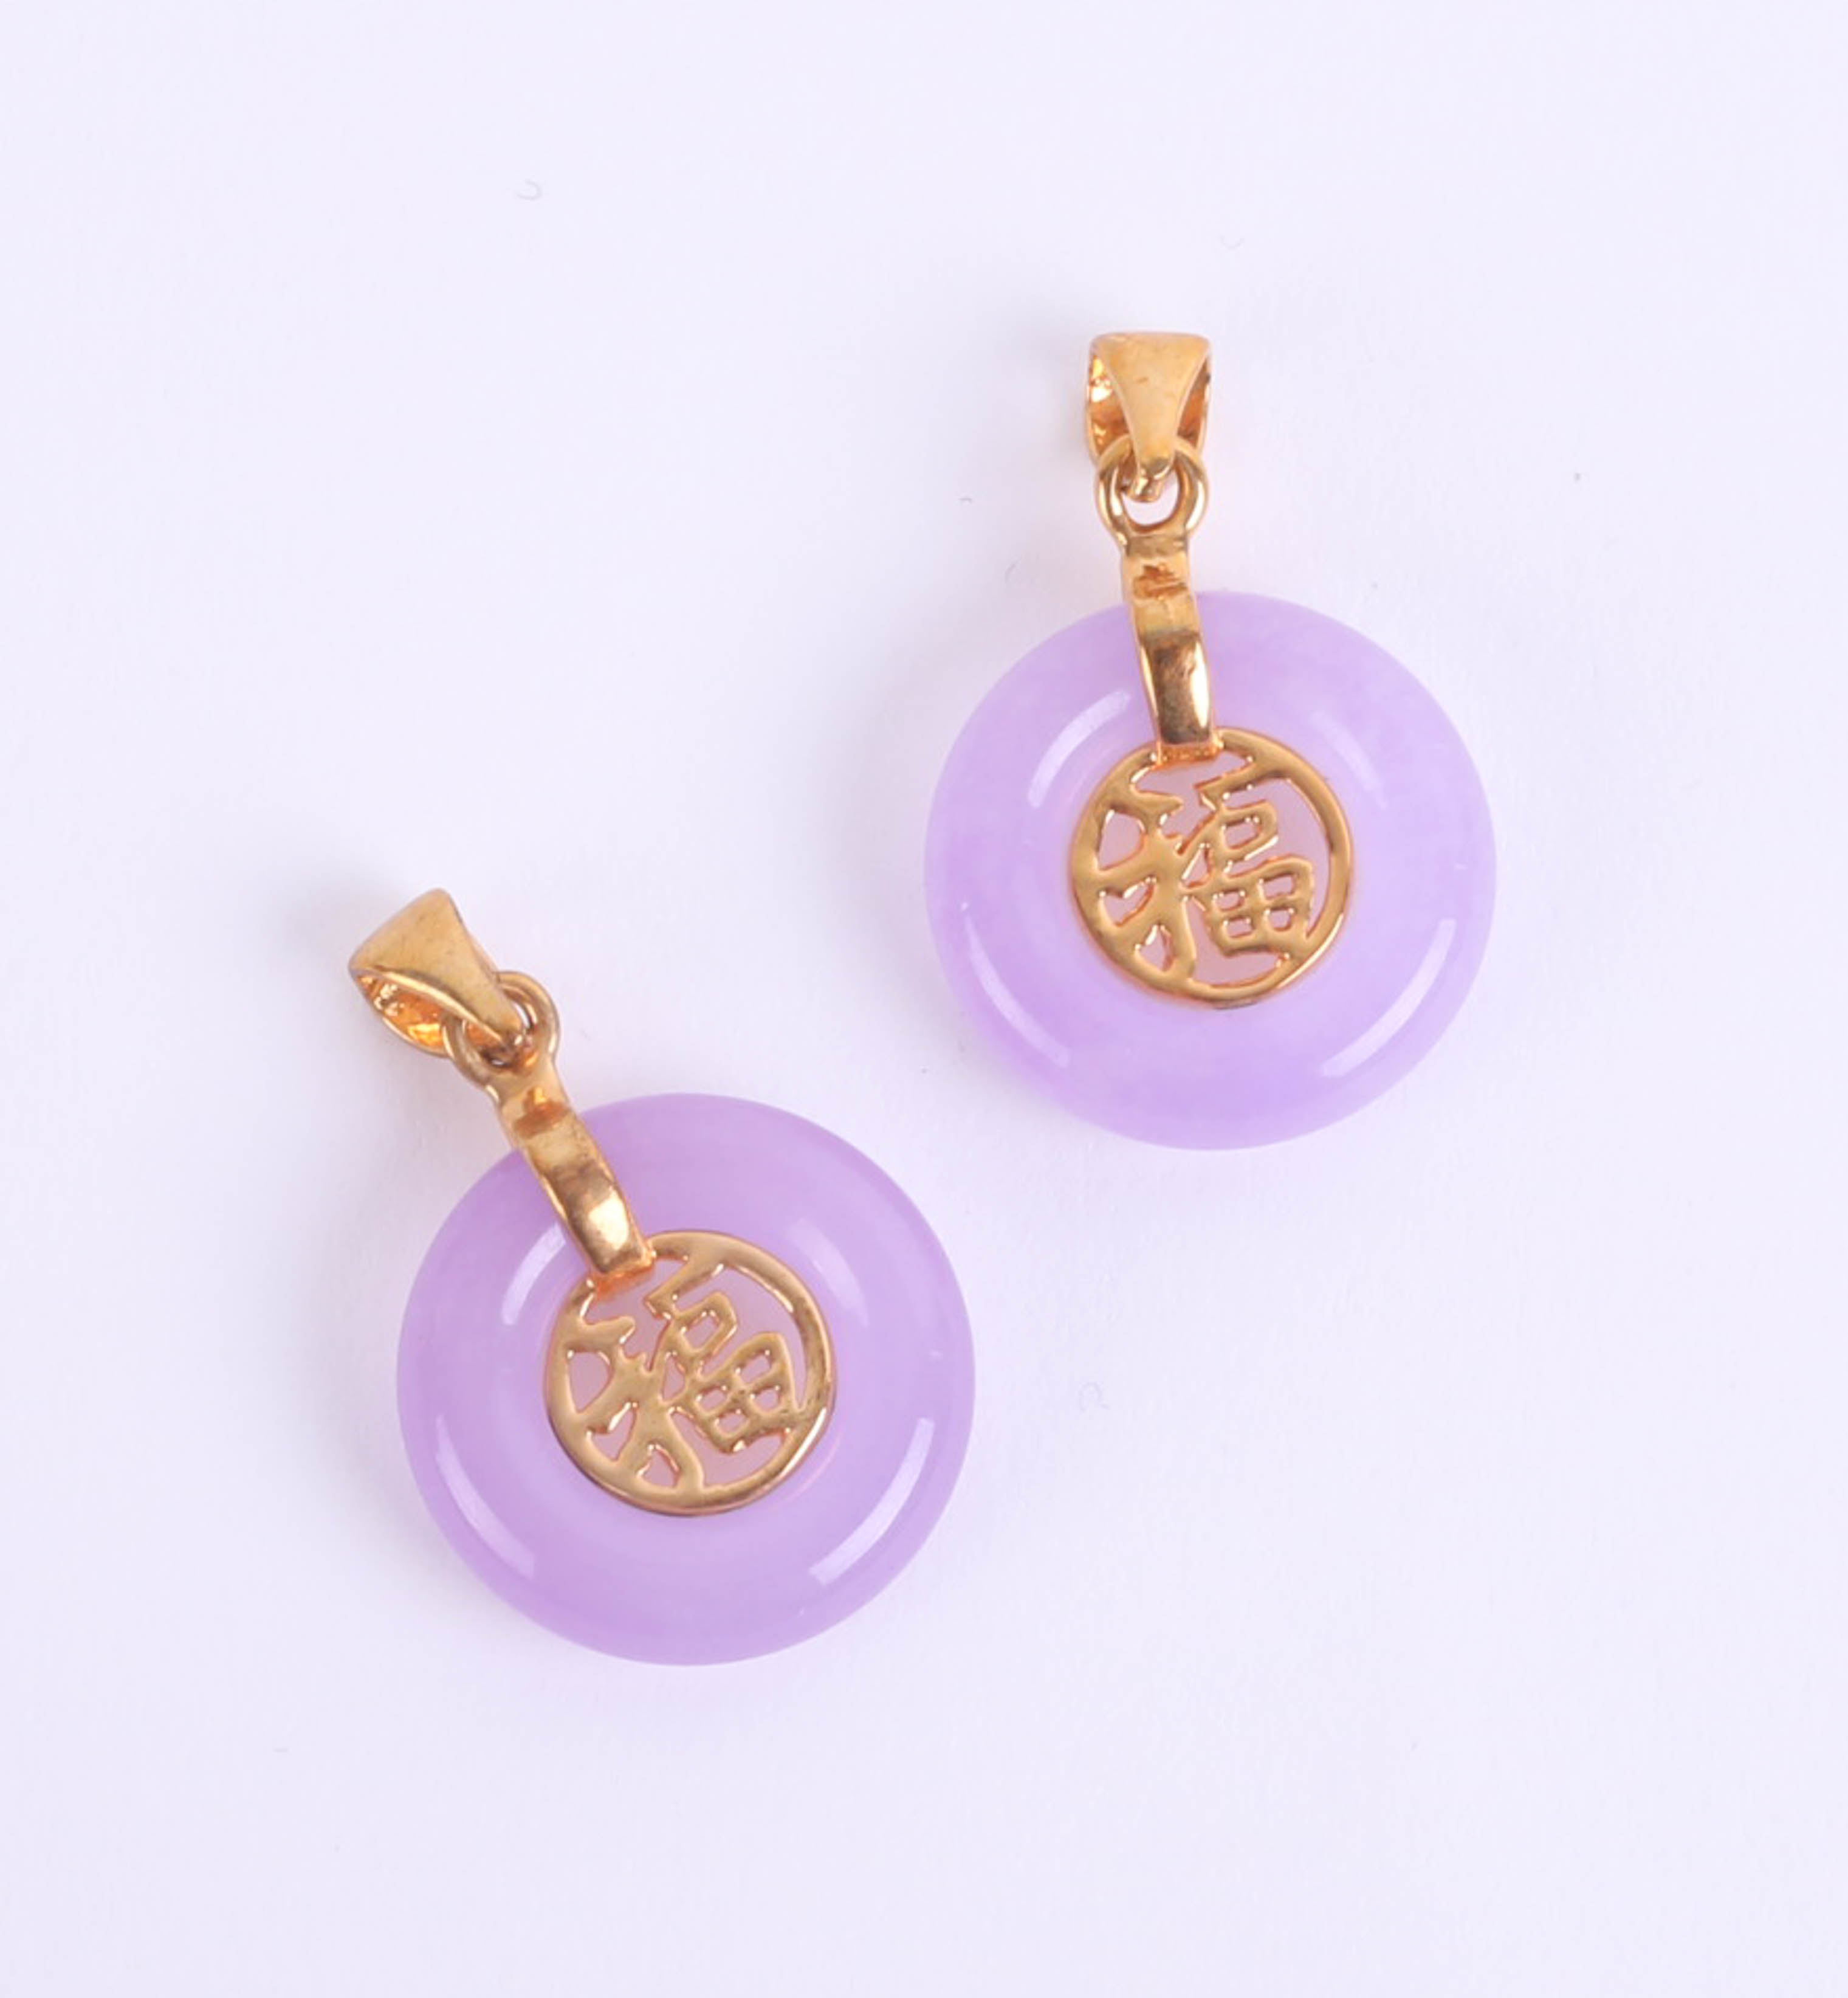 Lot 042 - A pair of yellow gold and pink jade modern earrings with Chinese symbols, marked 18k, (purchased